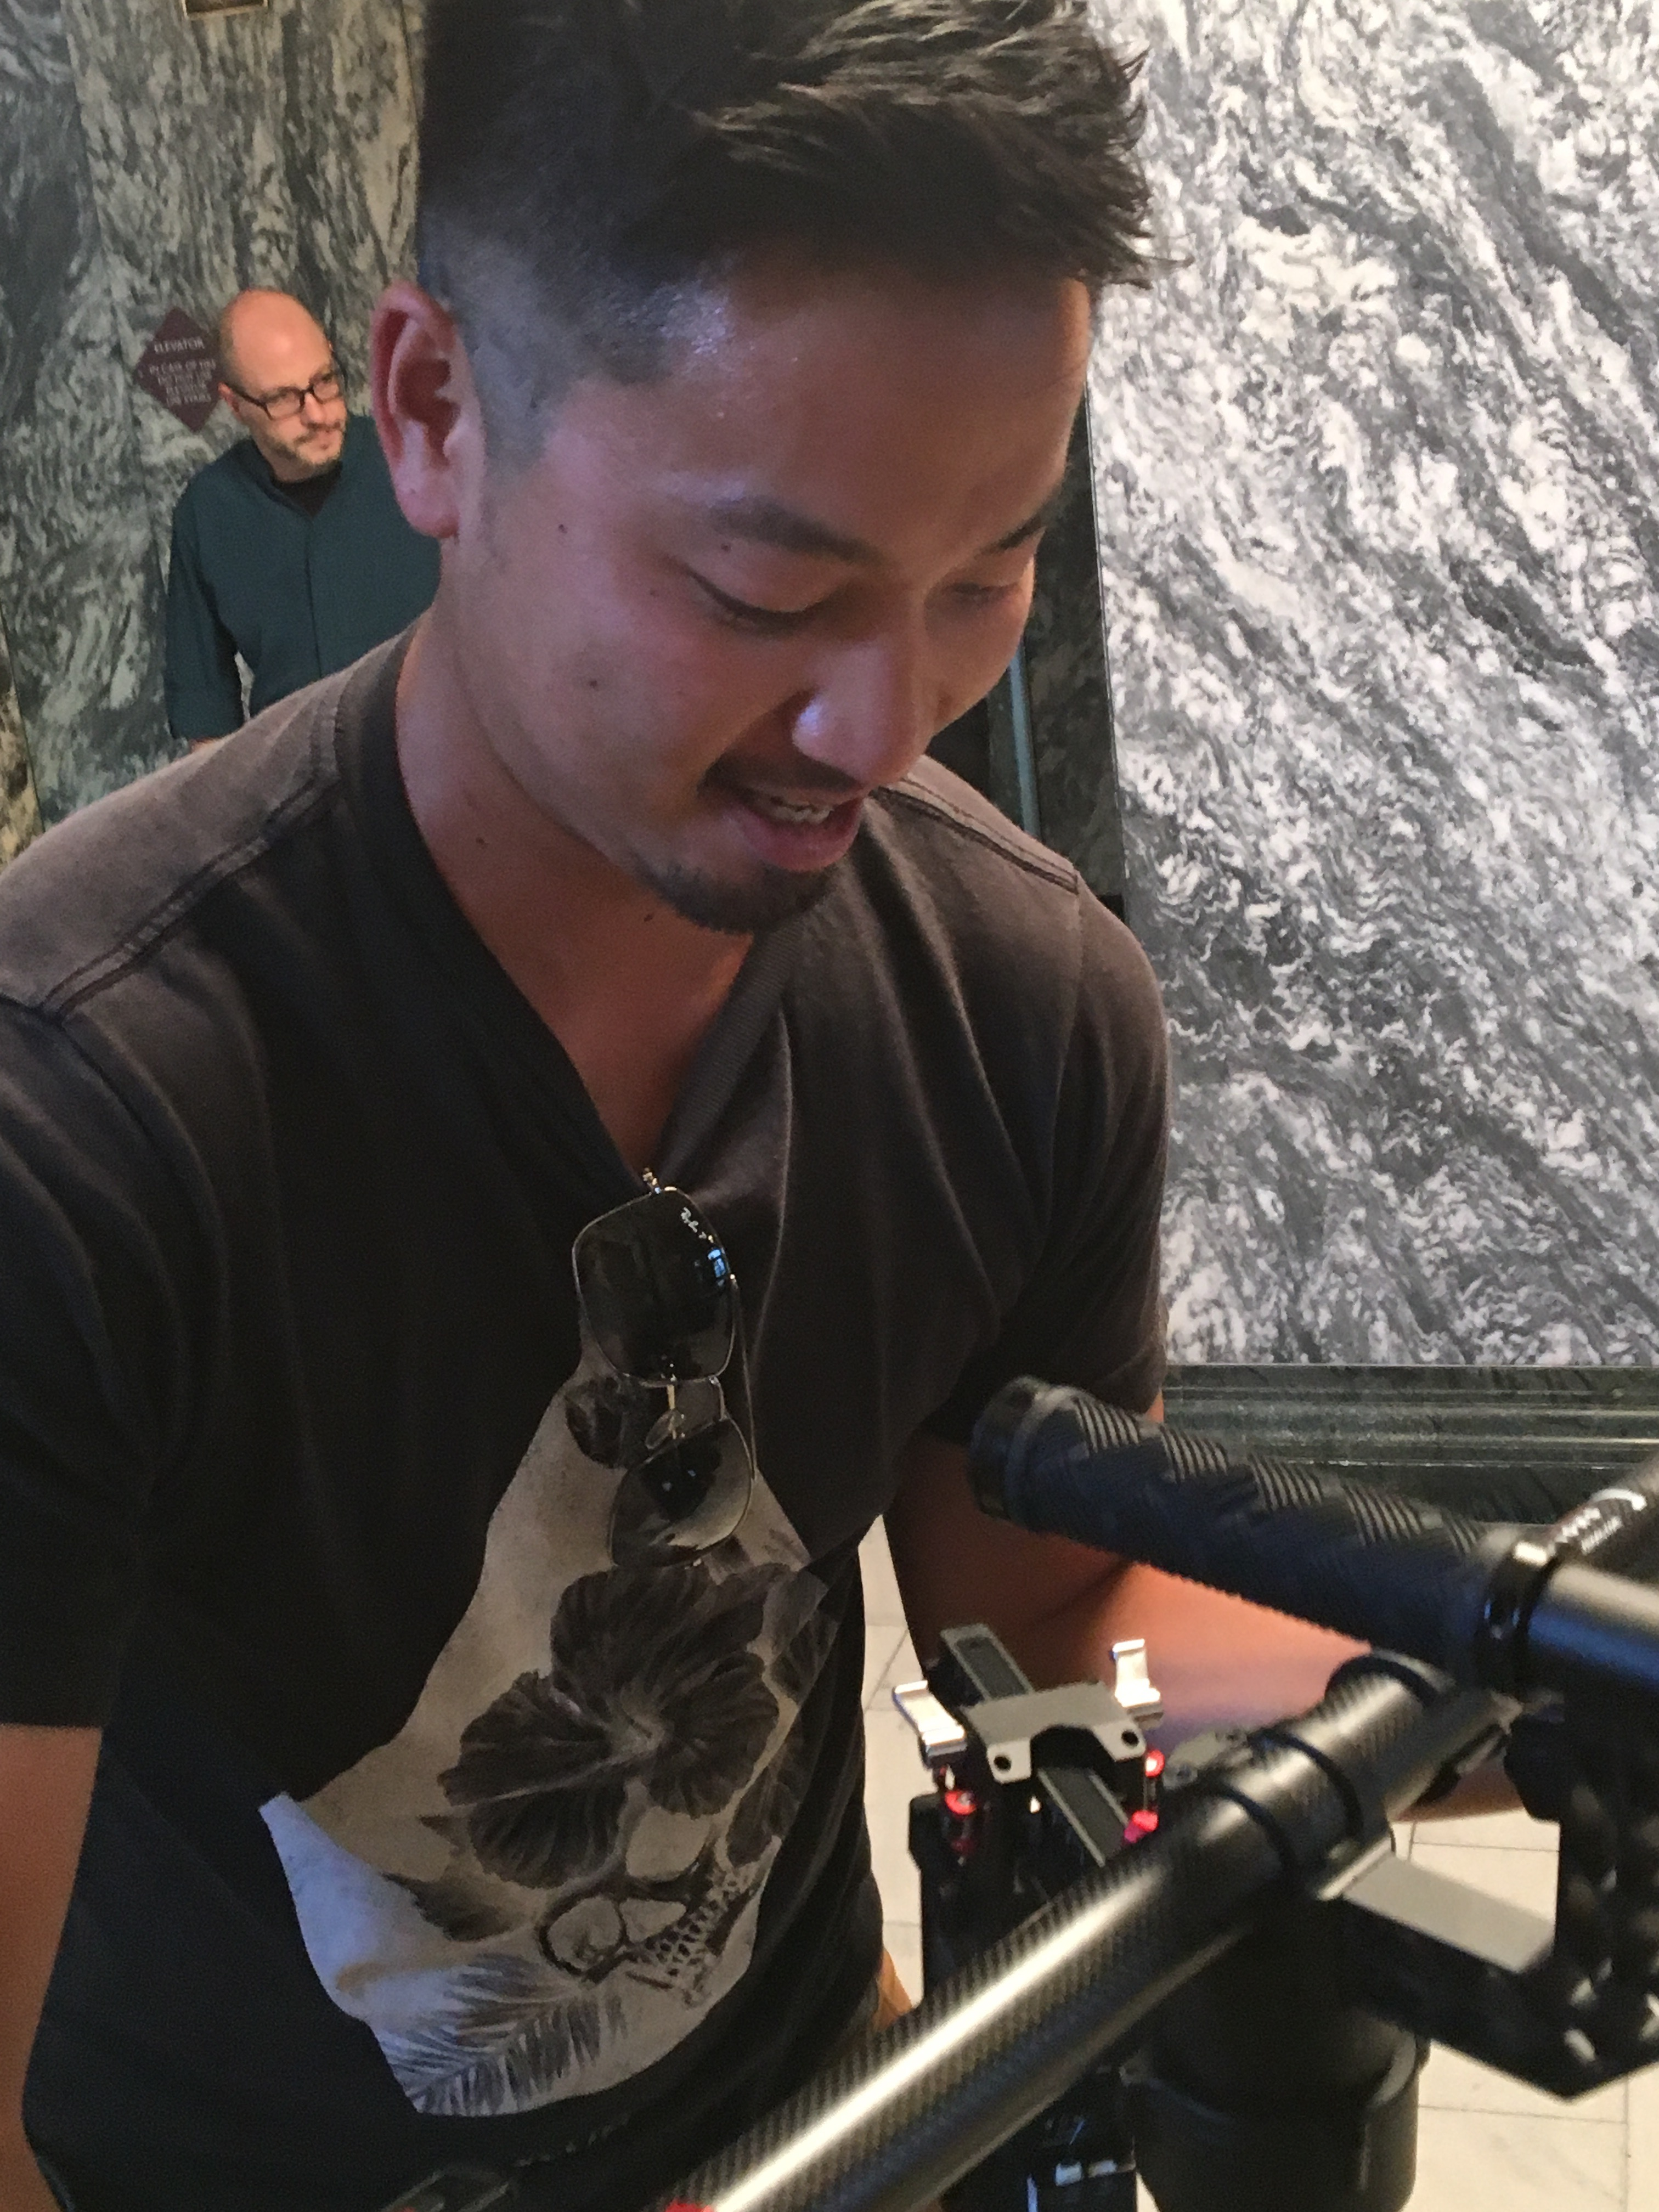 Shingo sets down his steady cam at the end of shooting a scene.